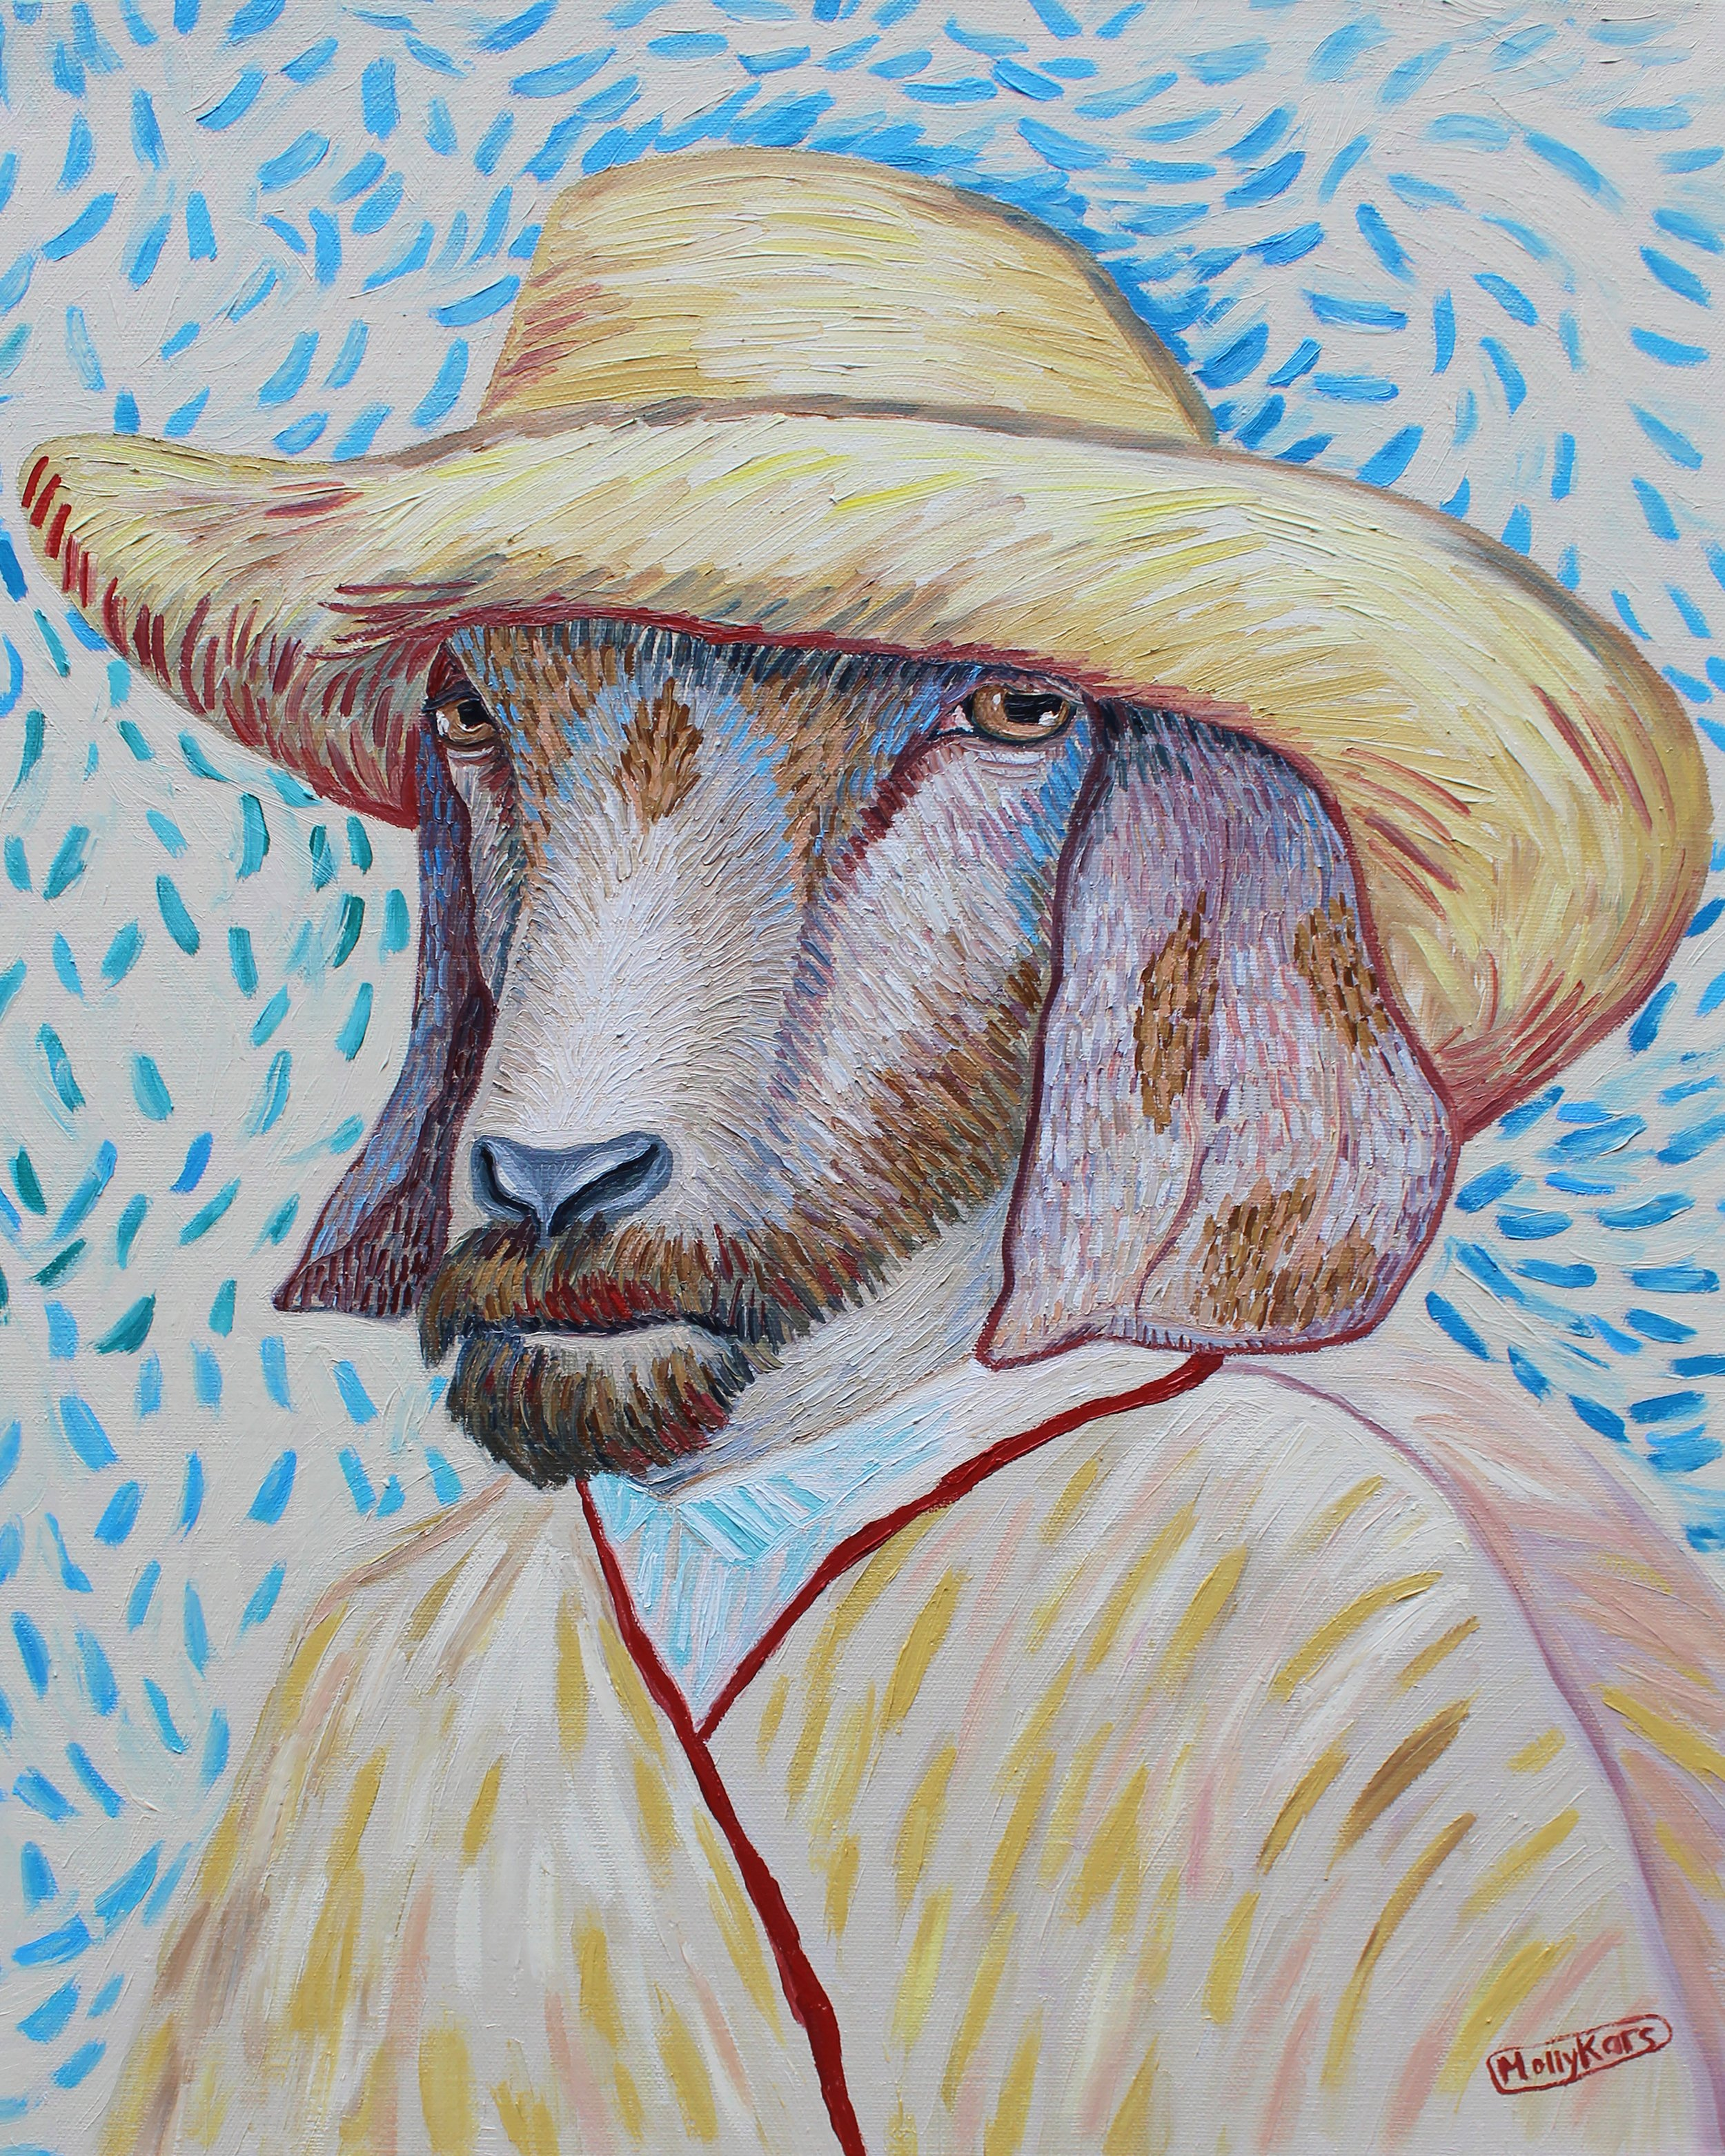 SOLD /// Van Goat Self-Portrait II: Straw Hat I • 20 x 16 • oil on canvas • $1,200